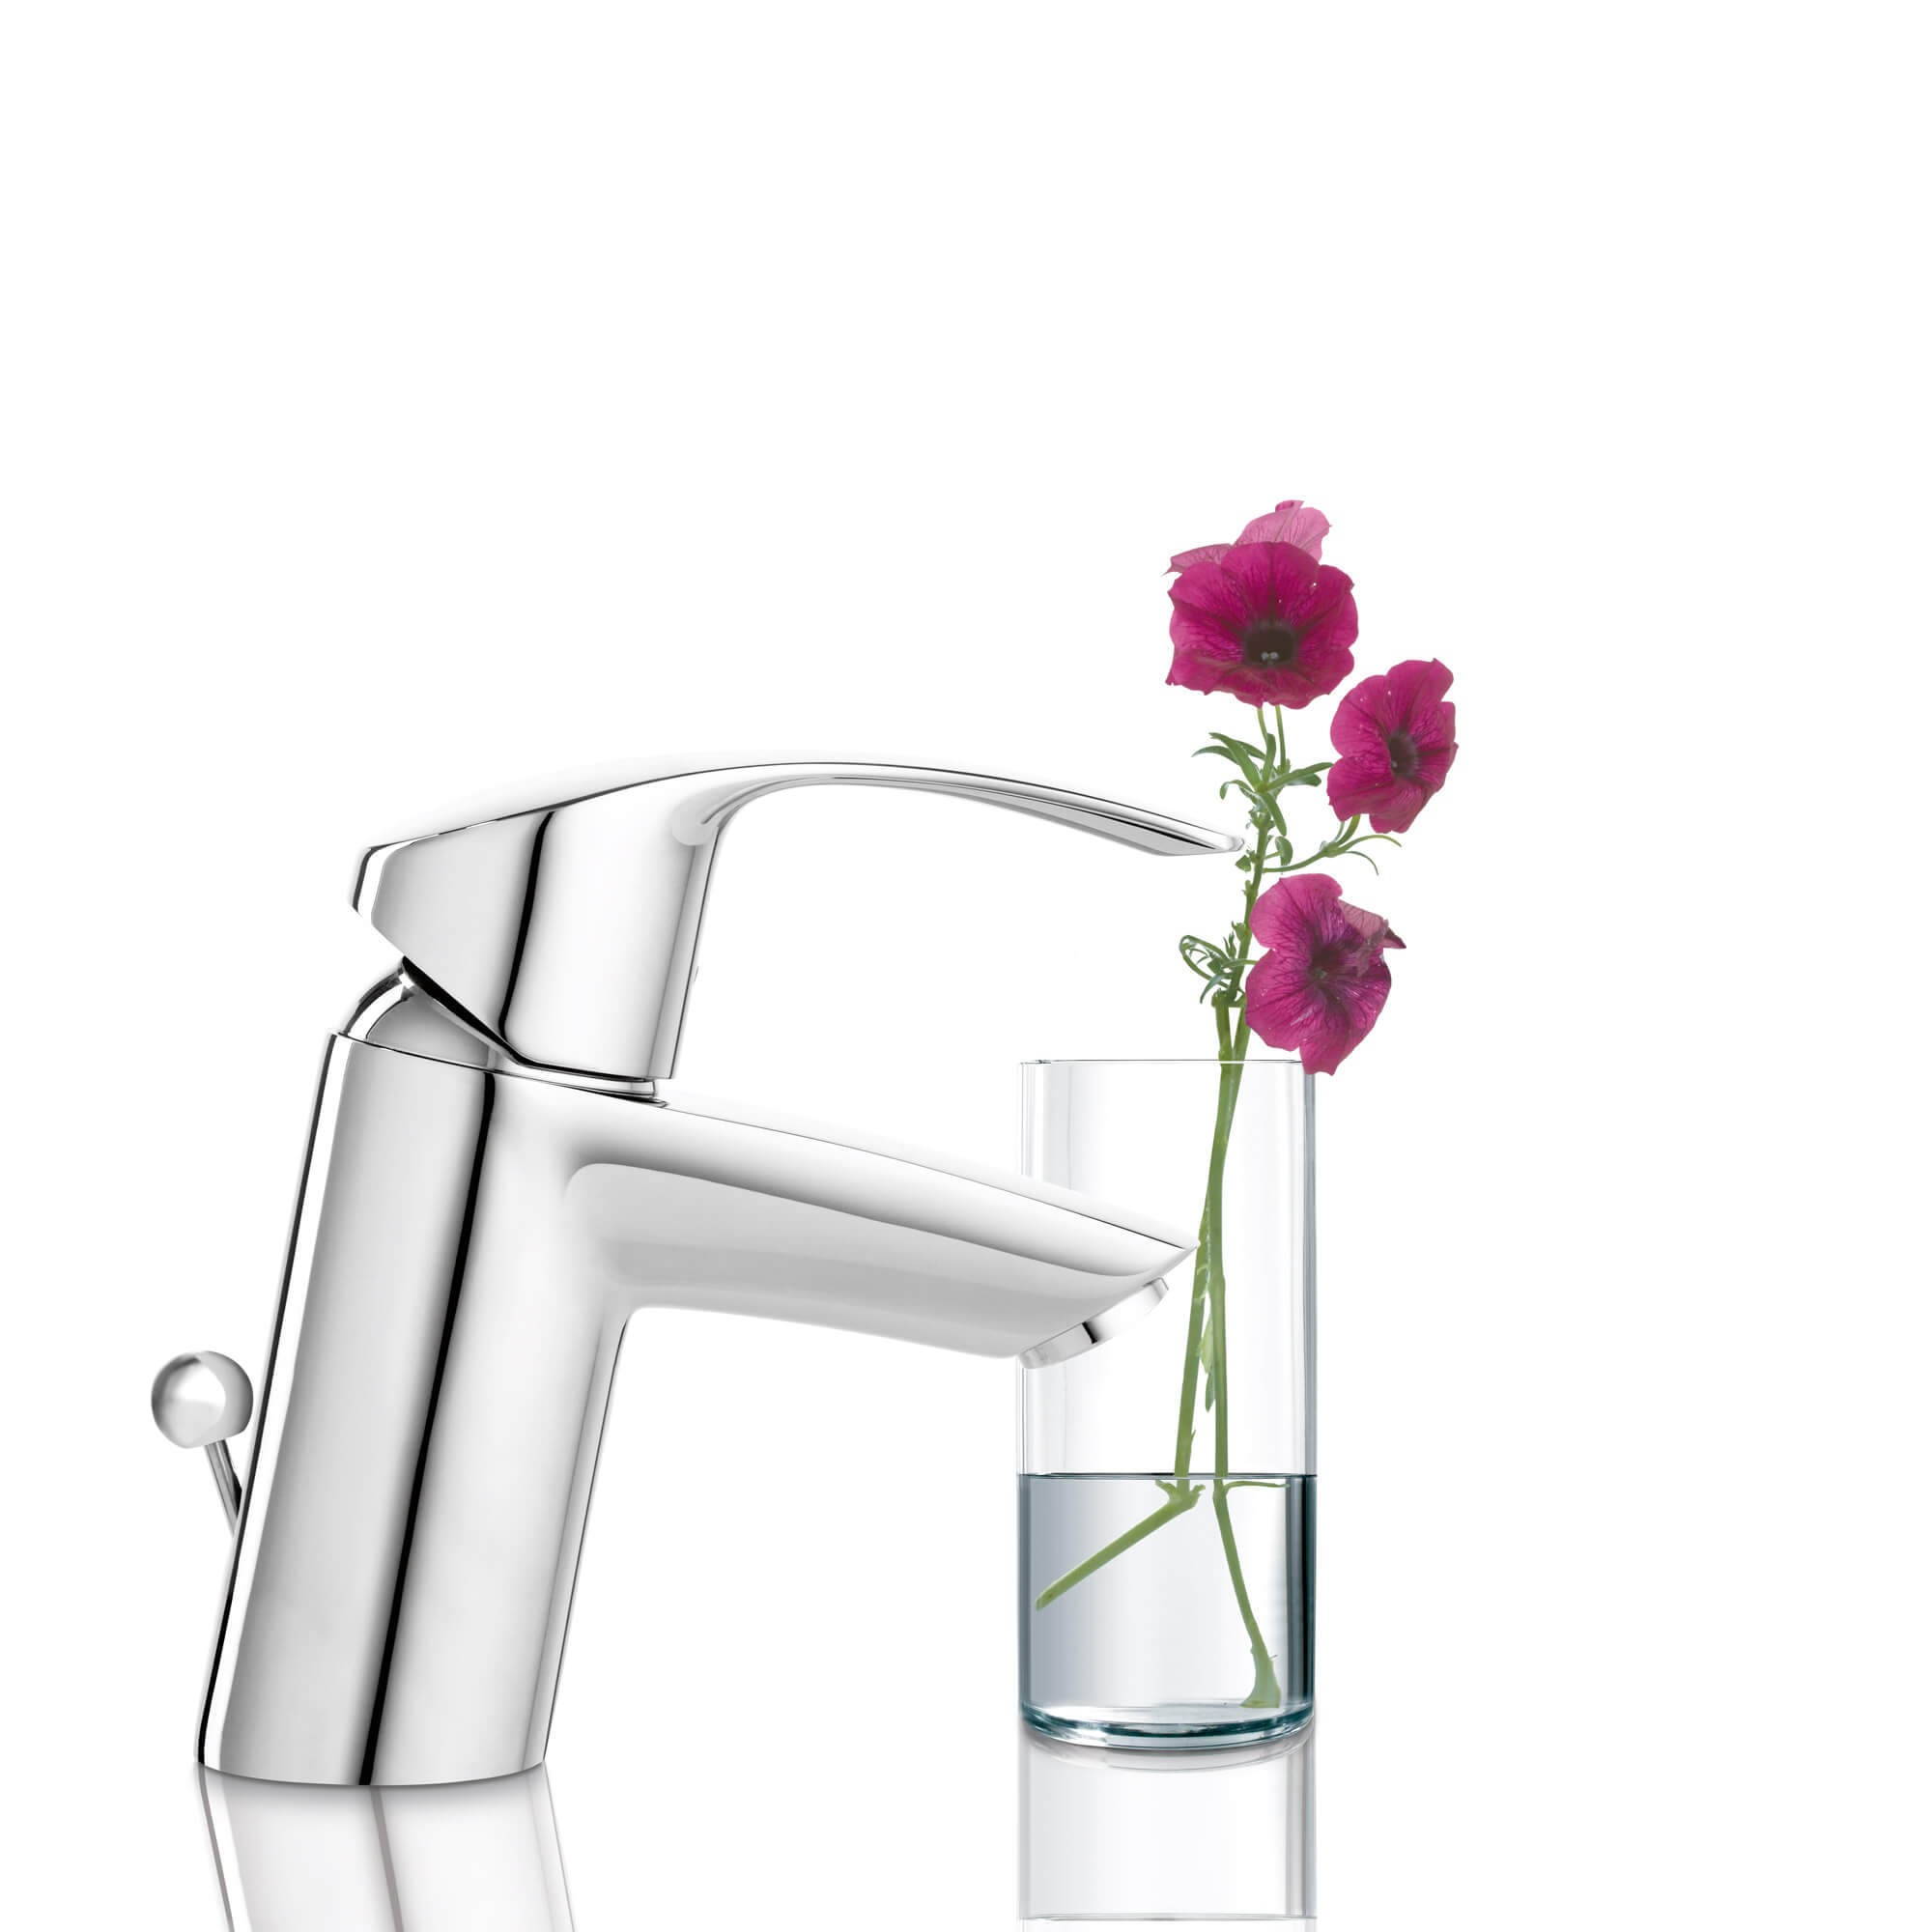 Eurosmart faucet pictured next to a glass filled with flowers.